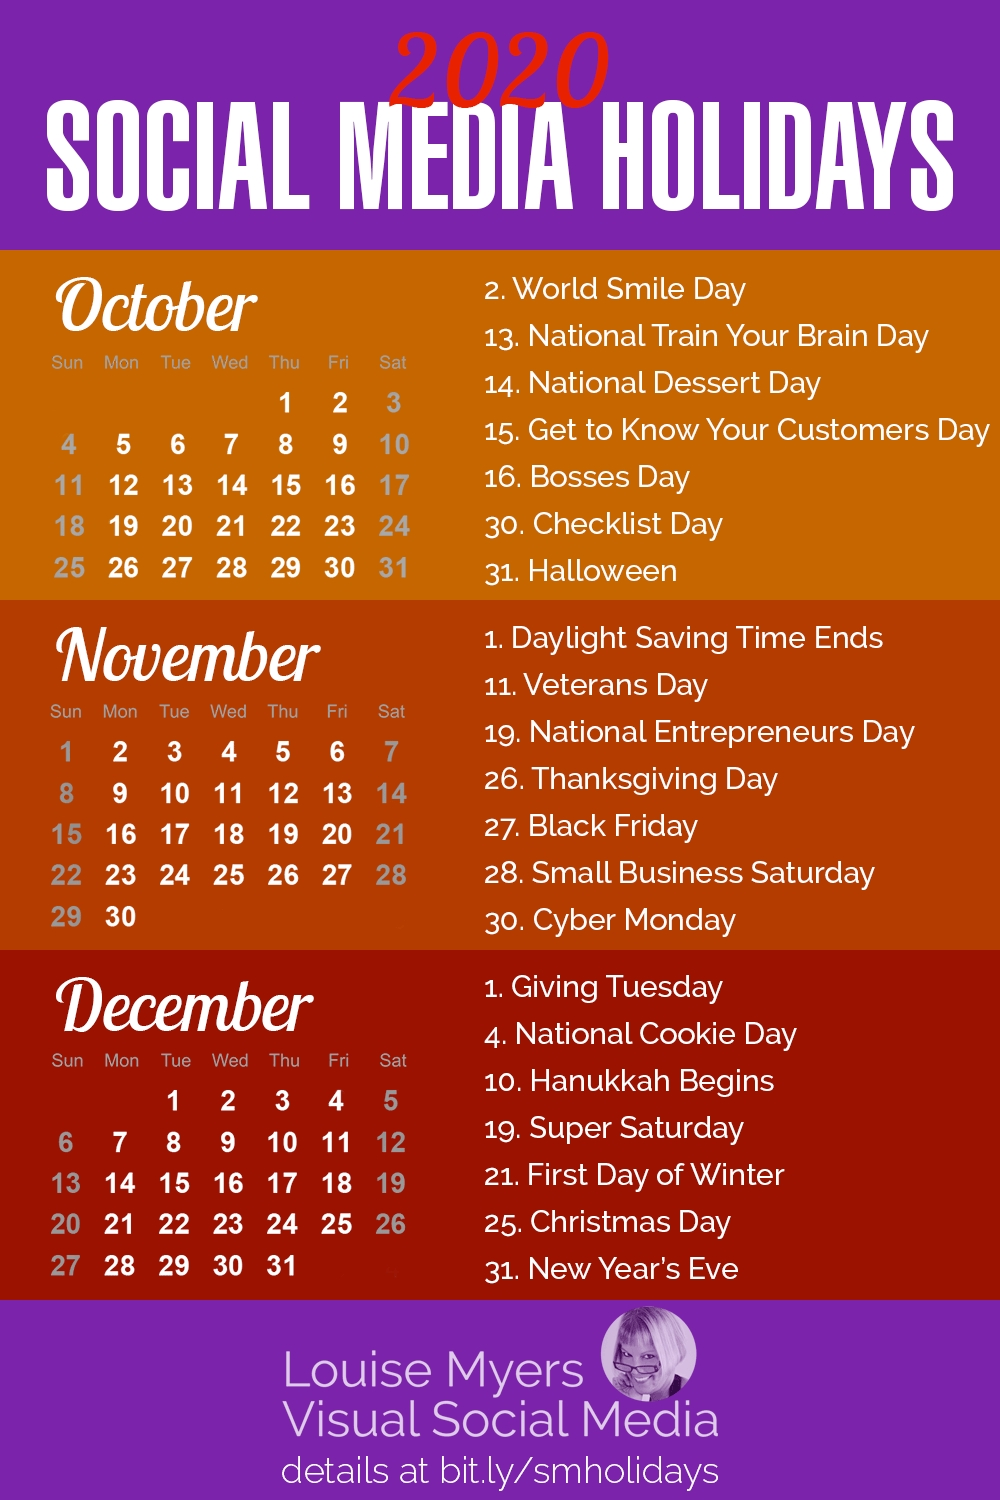 84 Social Media Holidays You Need In 2020: Indispensable! intended for Special Days In 2020 Calendar